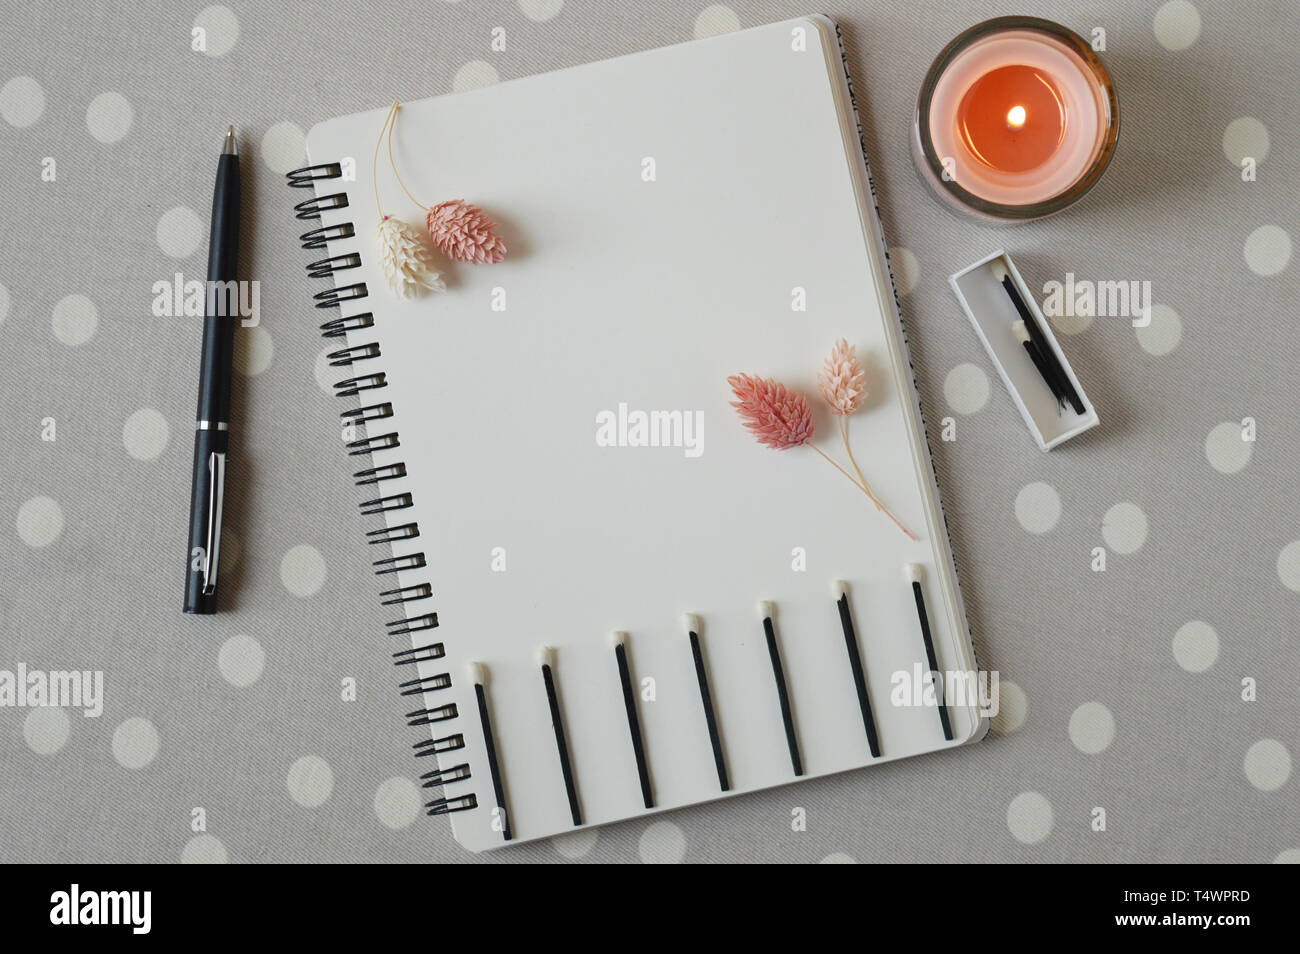 Lifegoals concept on notebook with match box and black wooden matches. Trendy concept. Burning coral candle. Dried flowers of pink tender color. Grey  - Stock Image